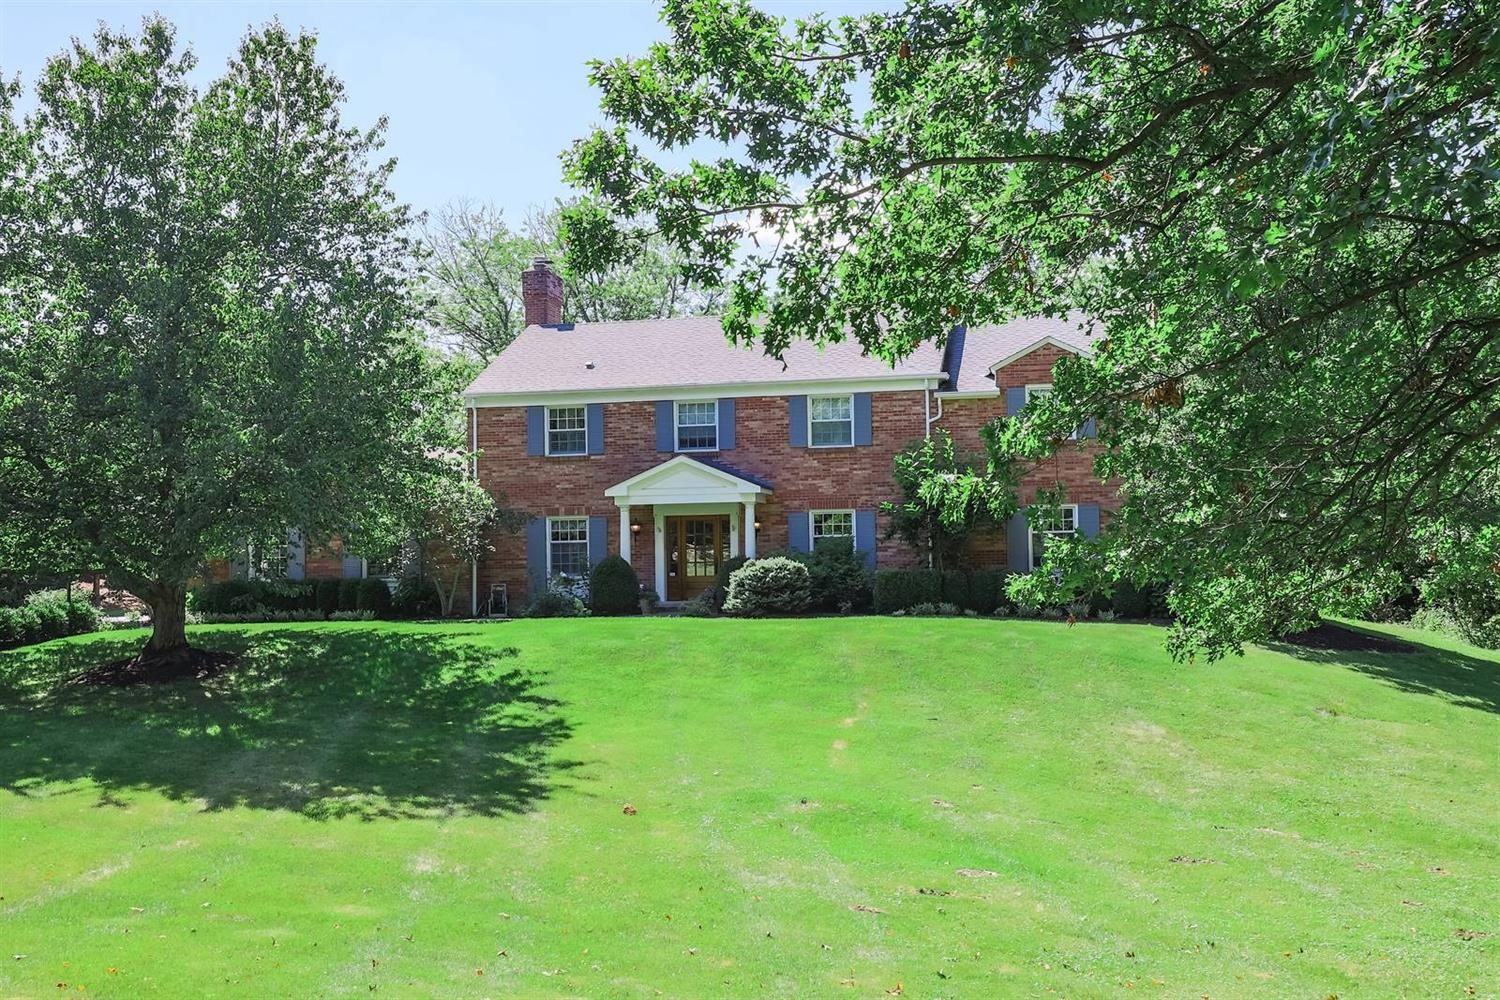 8155 Clippinger Drive, Indian Hill, Ohio 45243, 4 Bedrooms Bedrooms, 12 Rooms Rooms,4 BathroomsBathrooms,Single Family Residence,For Sale,Clippinger,1713440